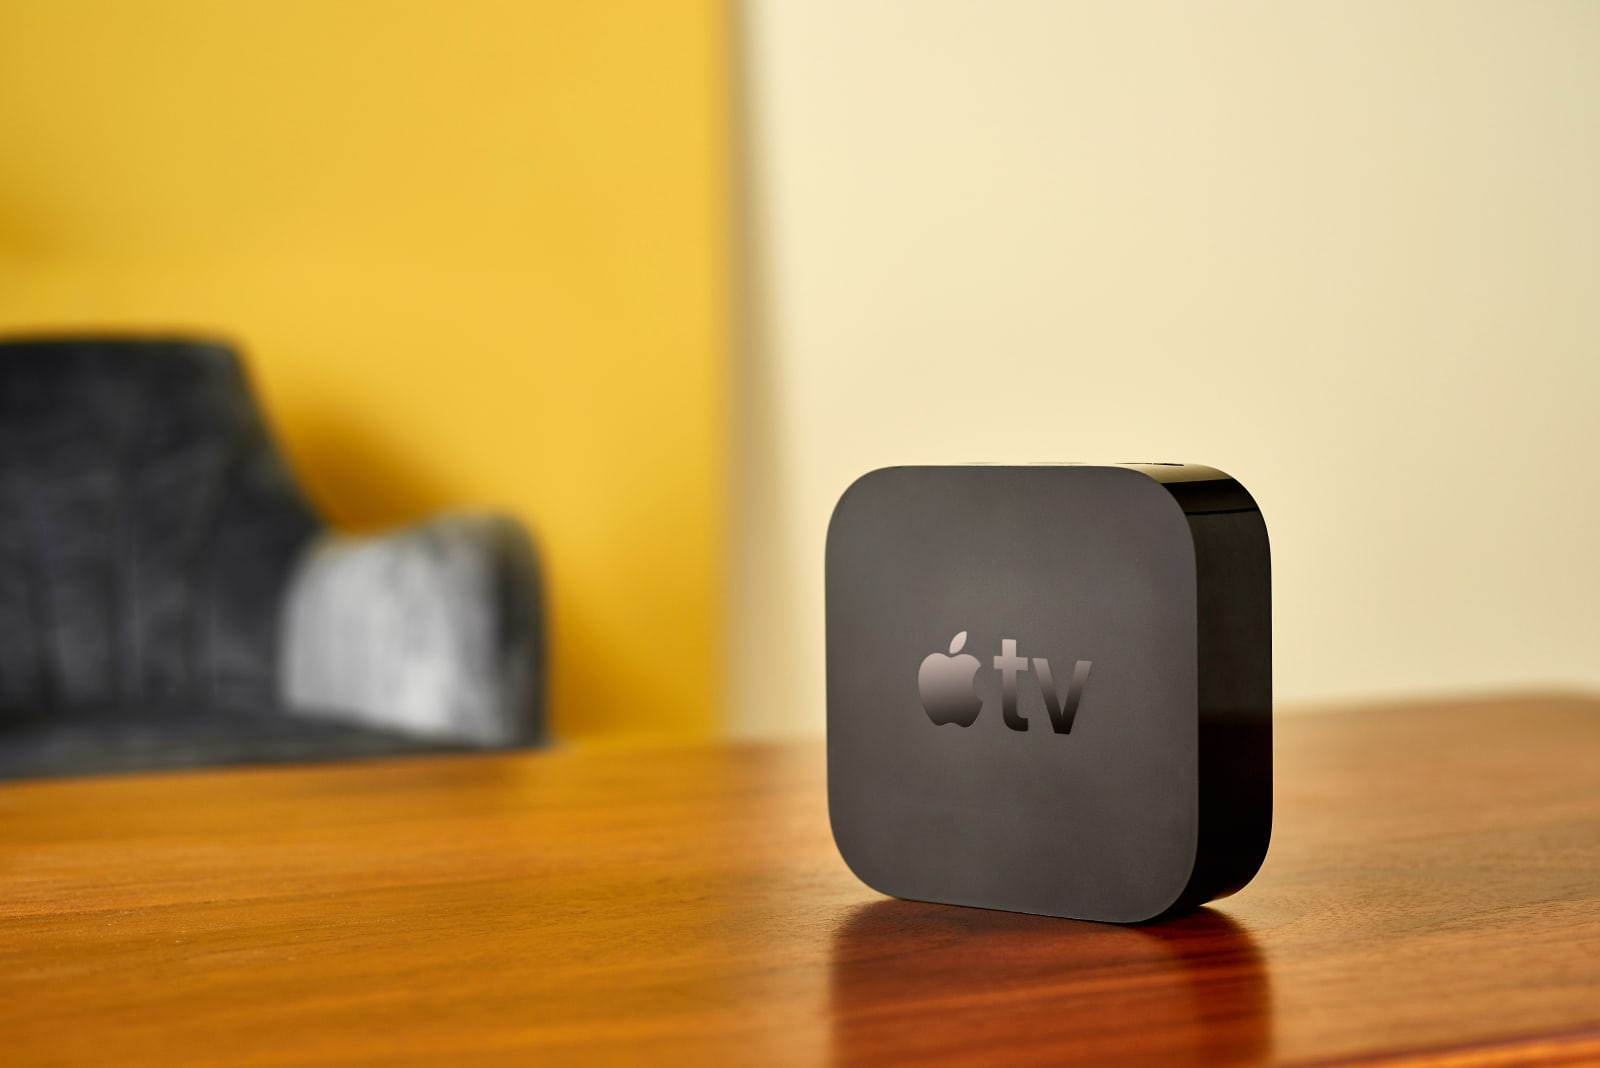 Apple TV beta tests iOS-like picture-in-picture